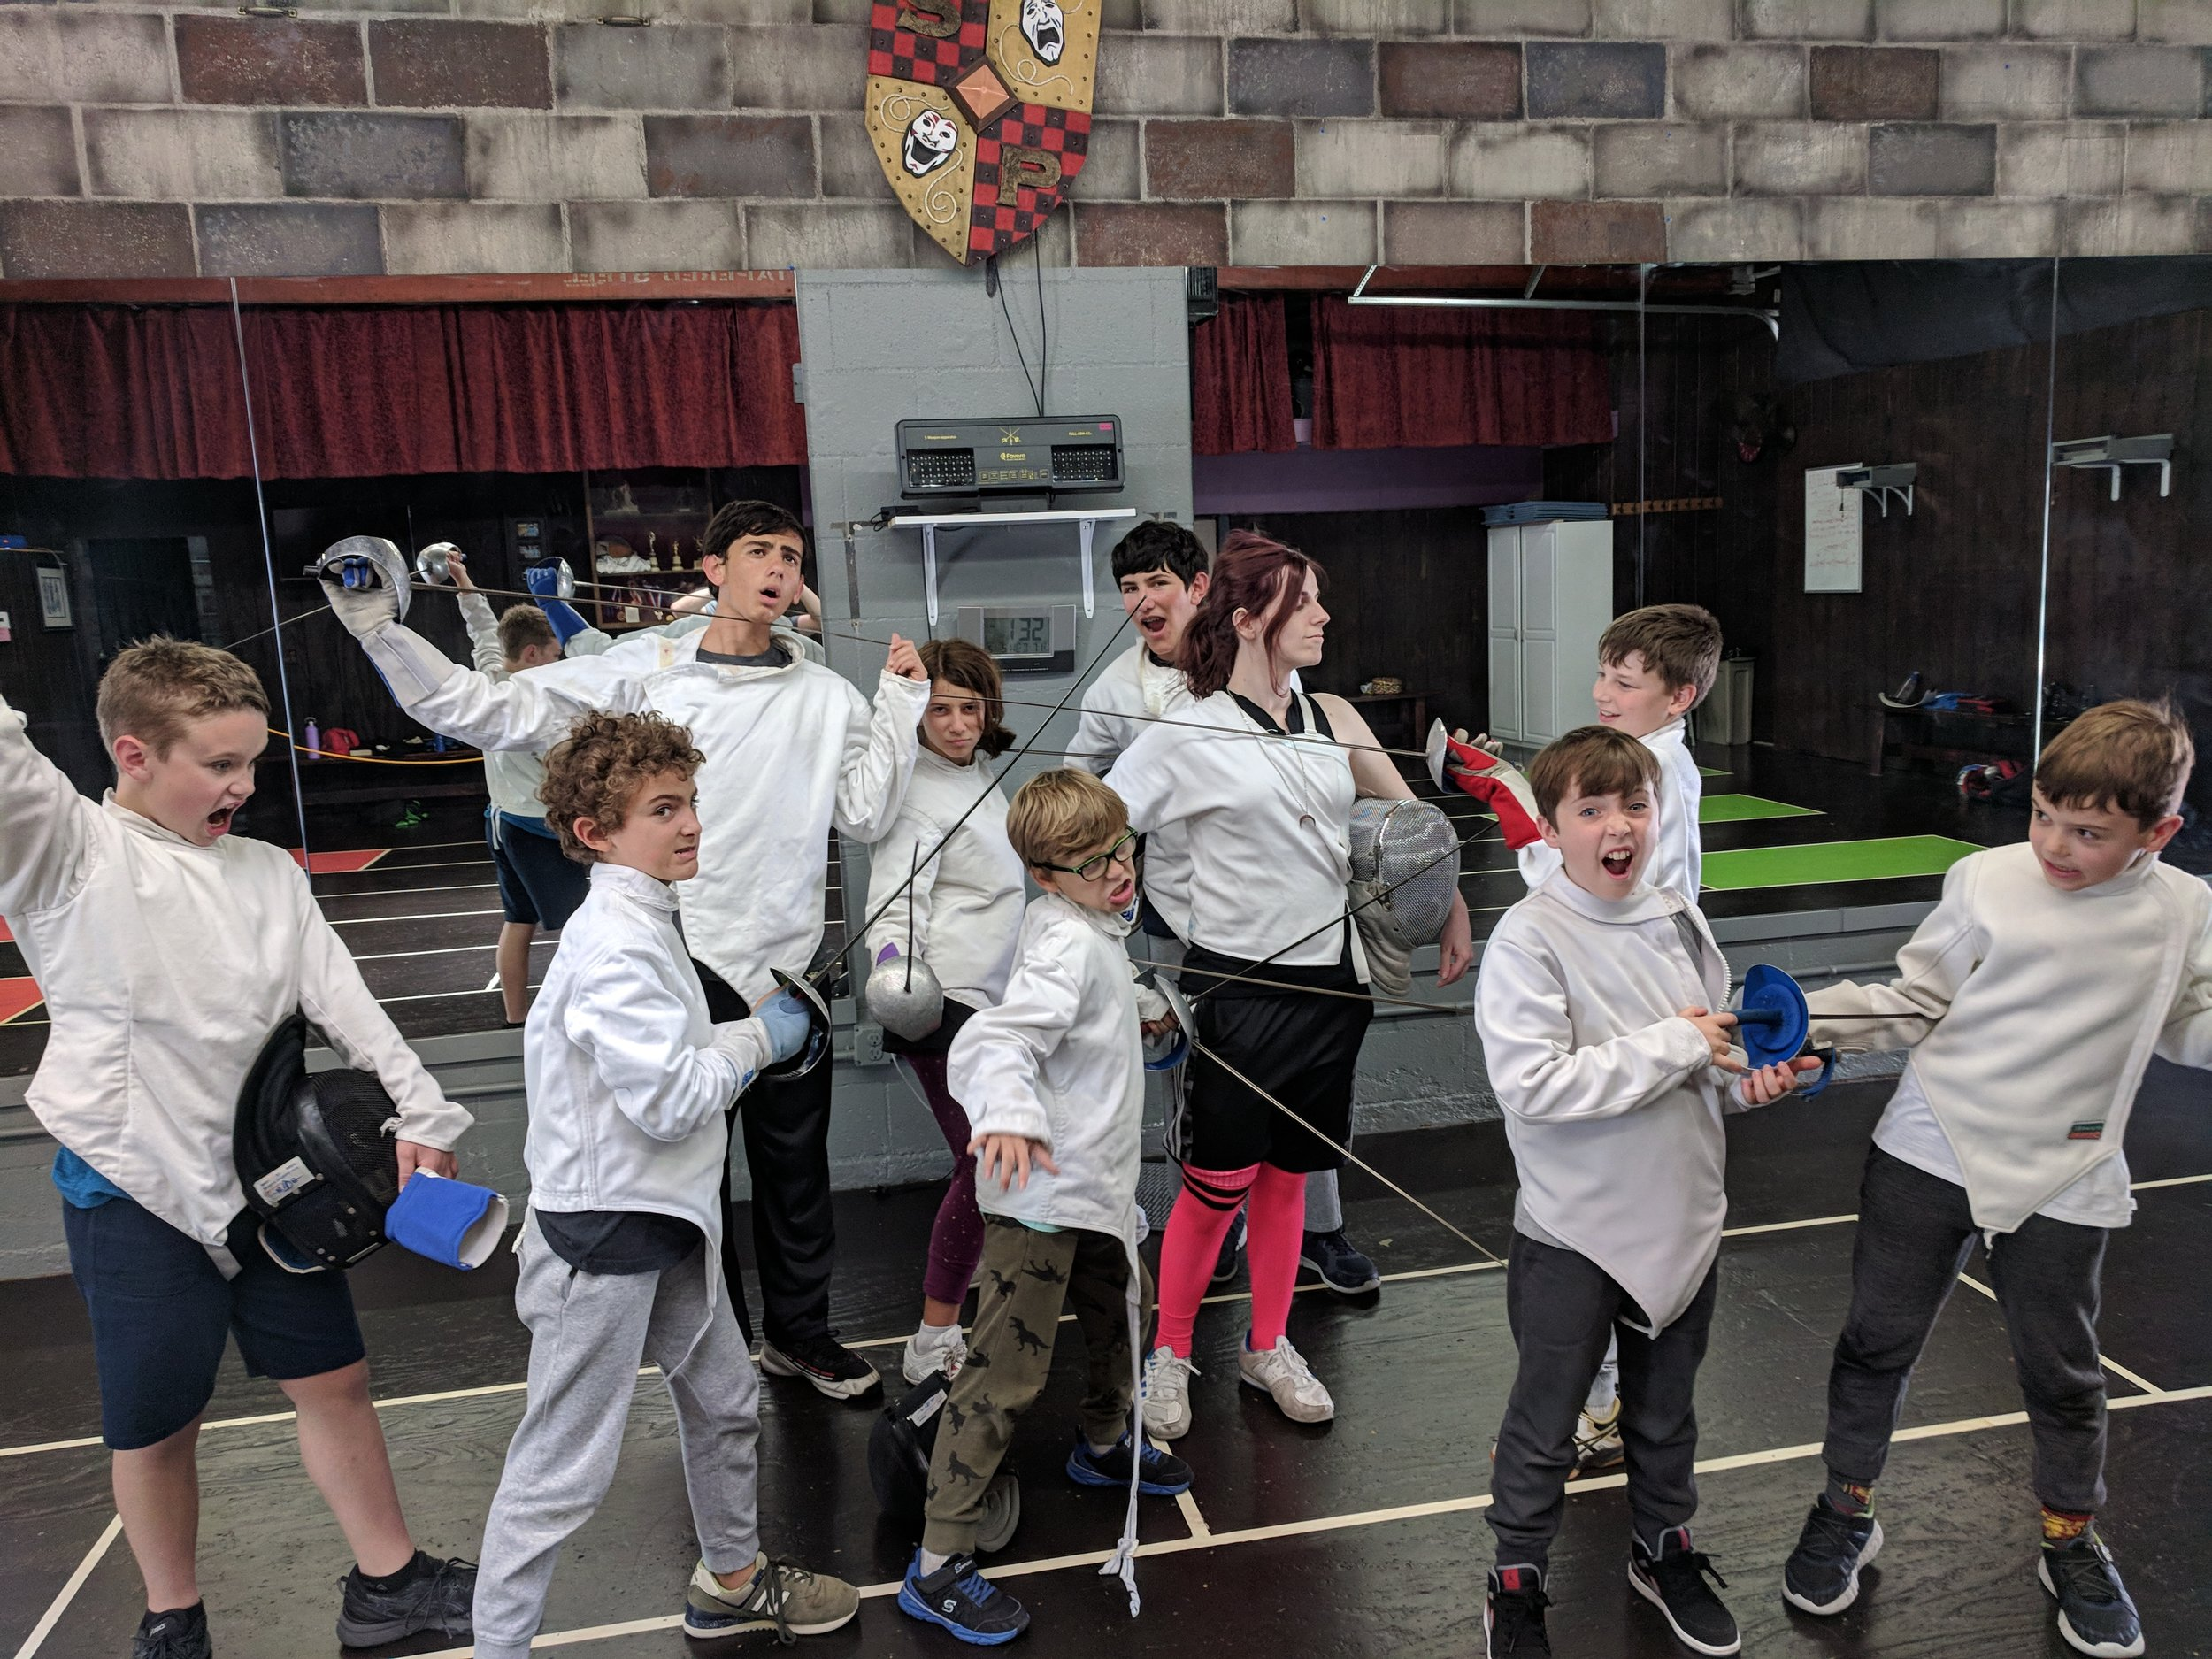 Fencing Camps (Ages 7-14) - Jump into en garde! Whether your kid is a first-time duelist or a practiced fencer, they'll have a ton of fun while they sharpen their skills on the piste. We teach our students through a combination of exercises, games, and sparring in a facility that has been optimized for the sport. Each fencing camp ends with a tournament and plenty of smiles.